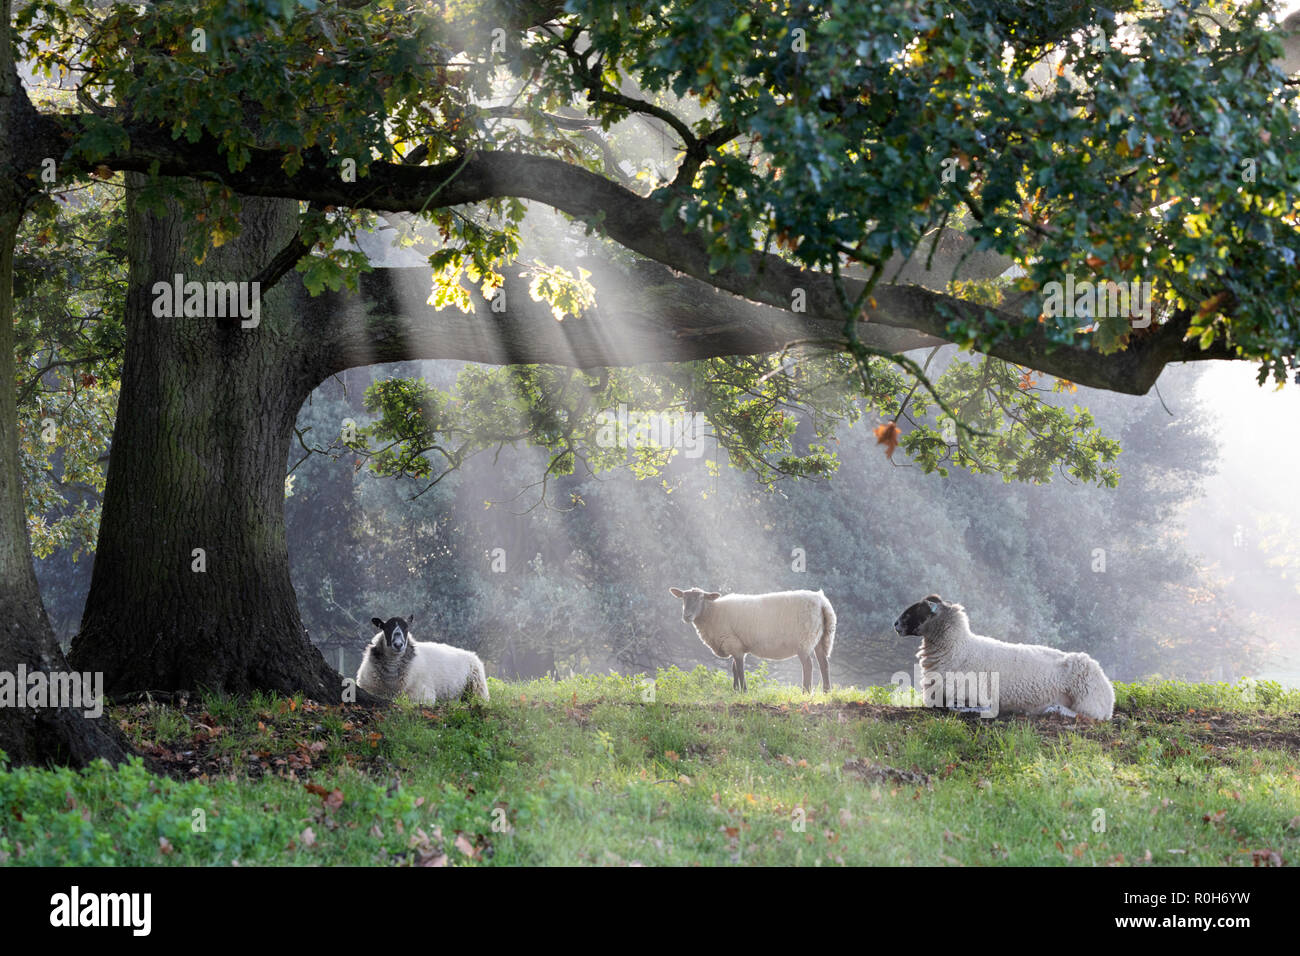 Moutons blancs sous les arbres avec des arbres de Misty du soleil, Chipping Campden, Cotswolds, Gloucestershire, Angleterre, Royaume-Uni, Europe Photo Stock